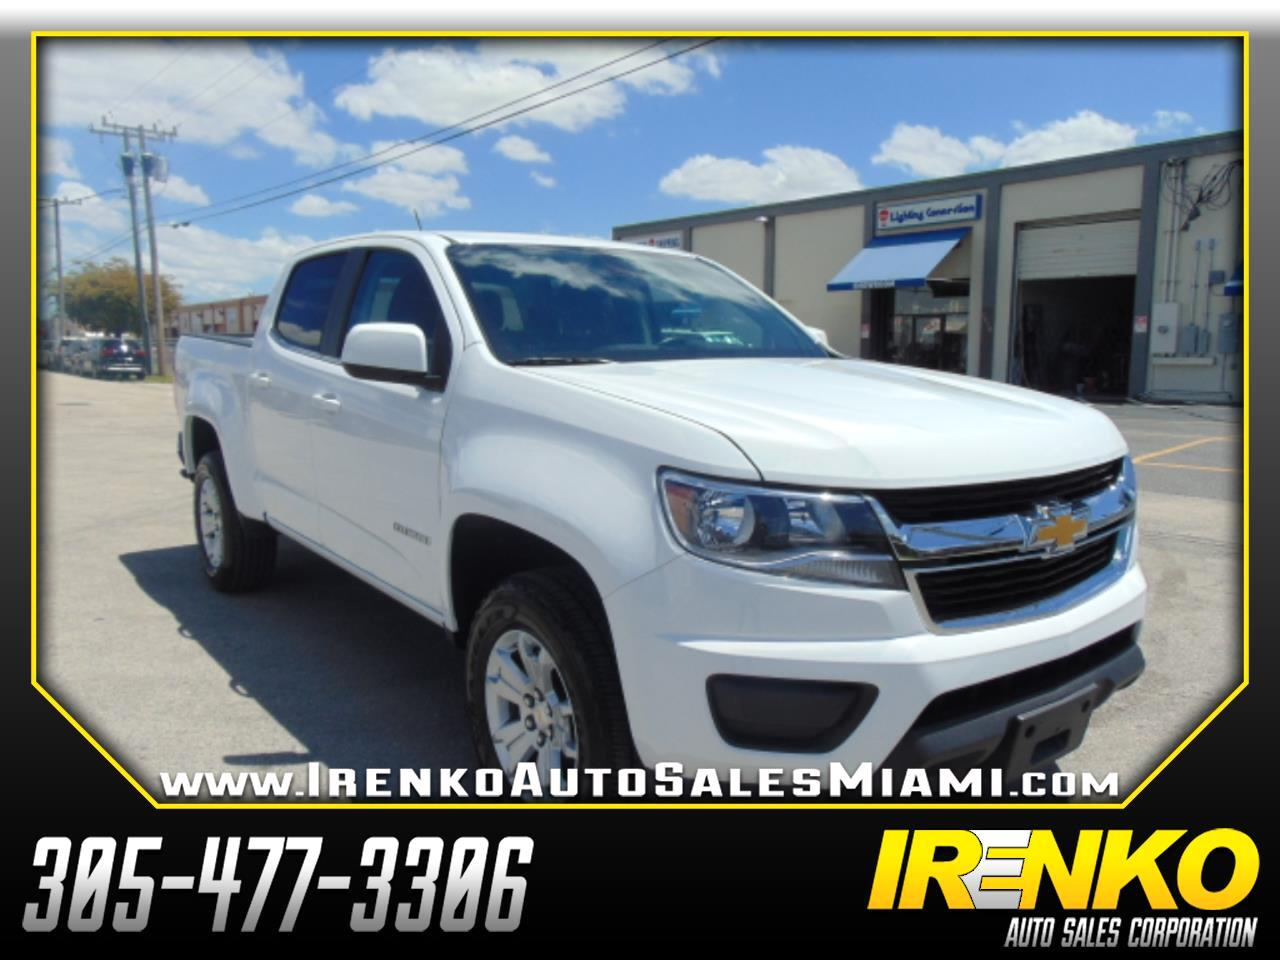 2019 Chevrolet Colorado 2WD Crew Cab 128.3